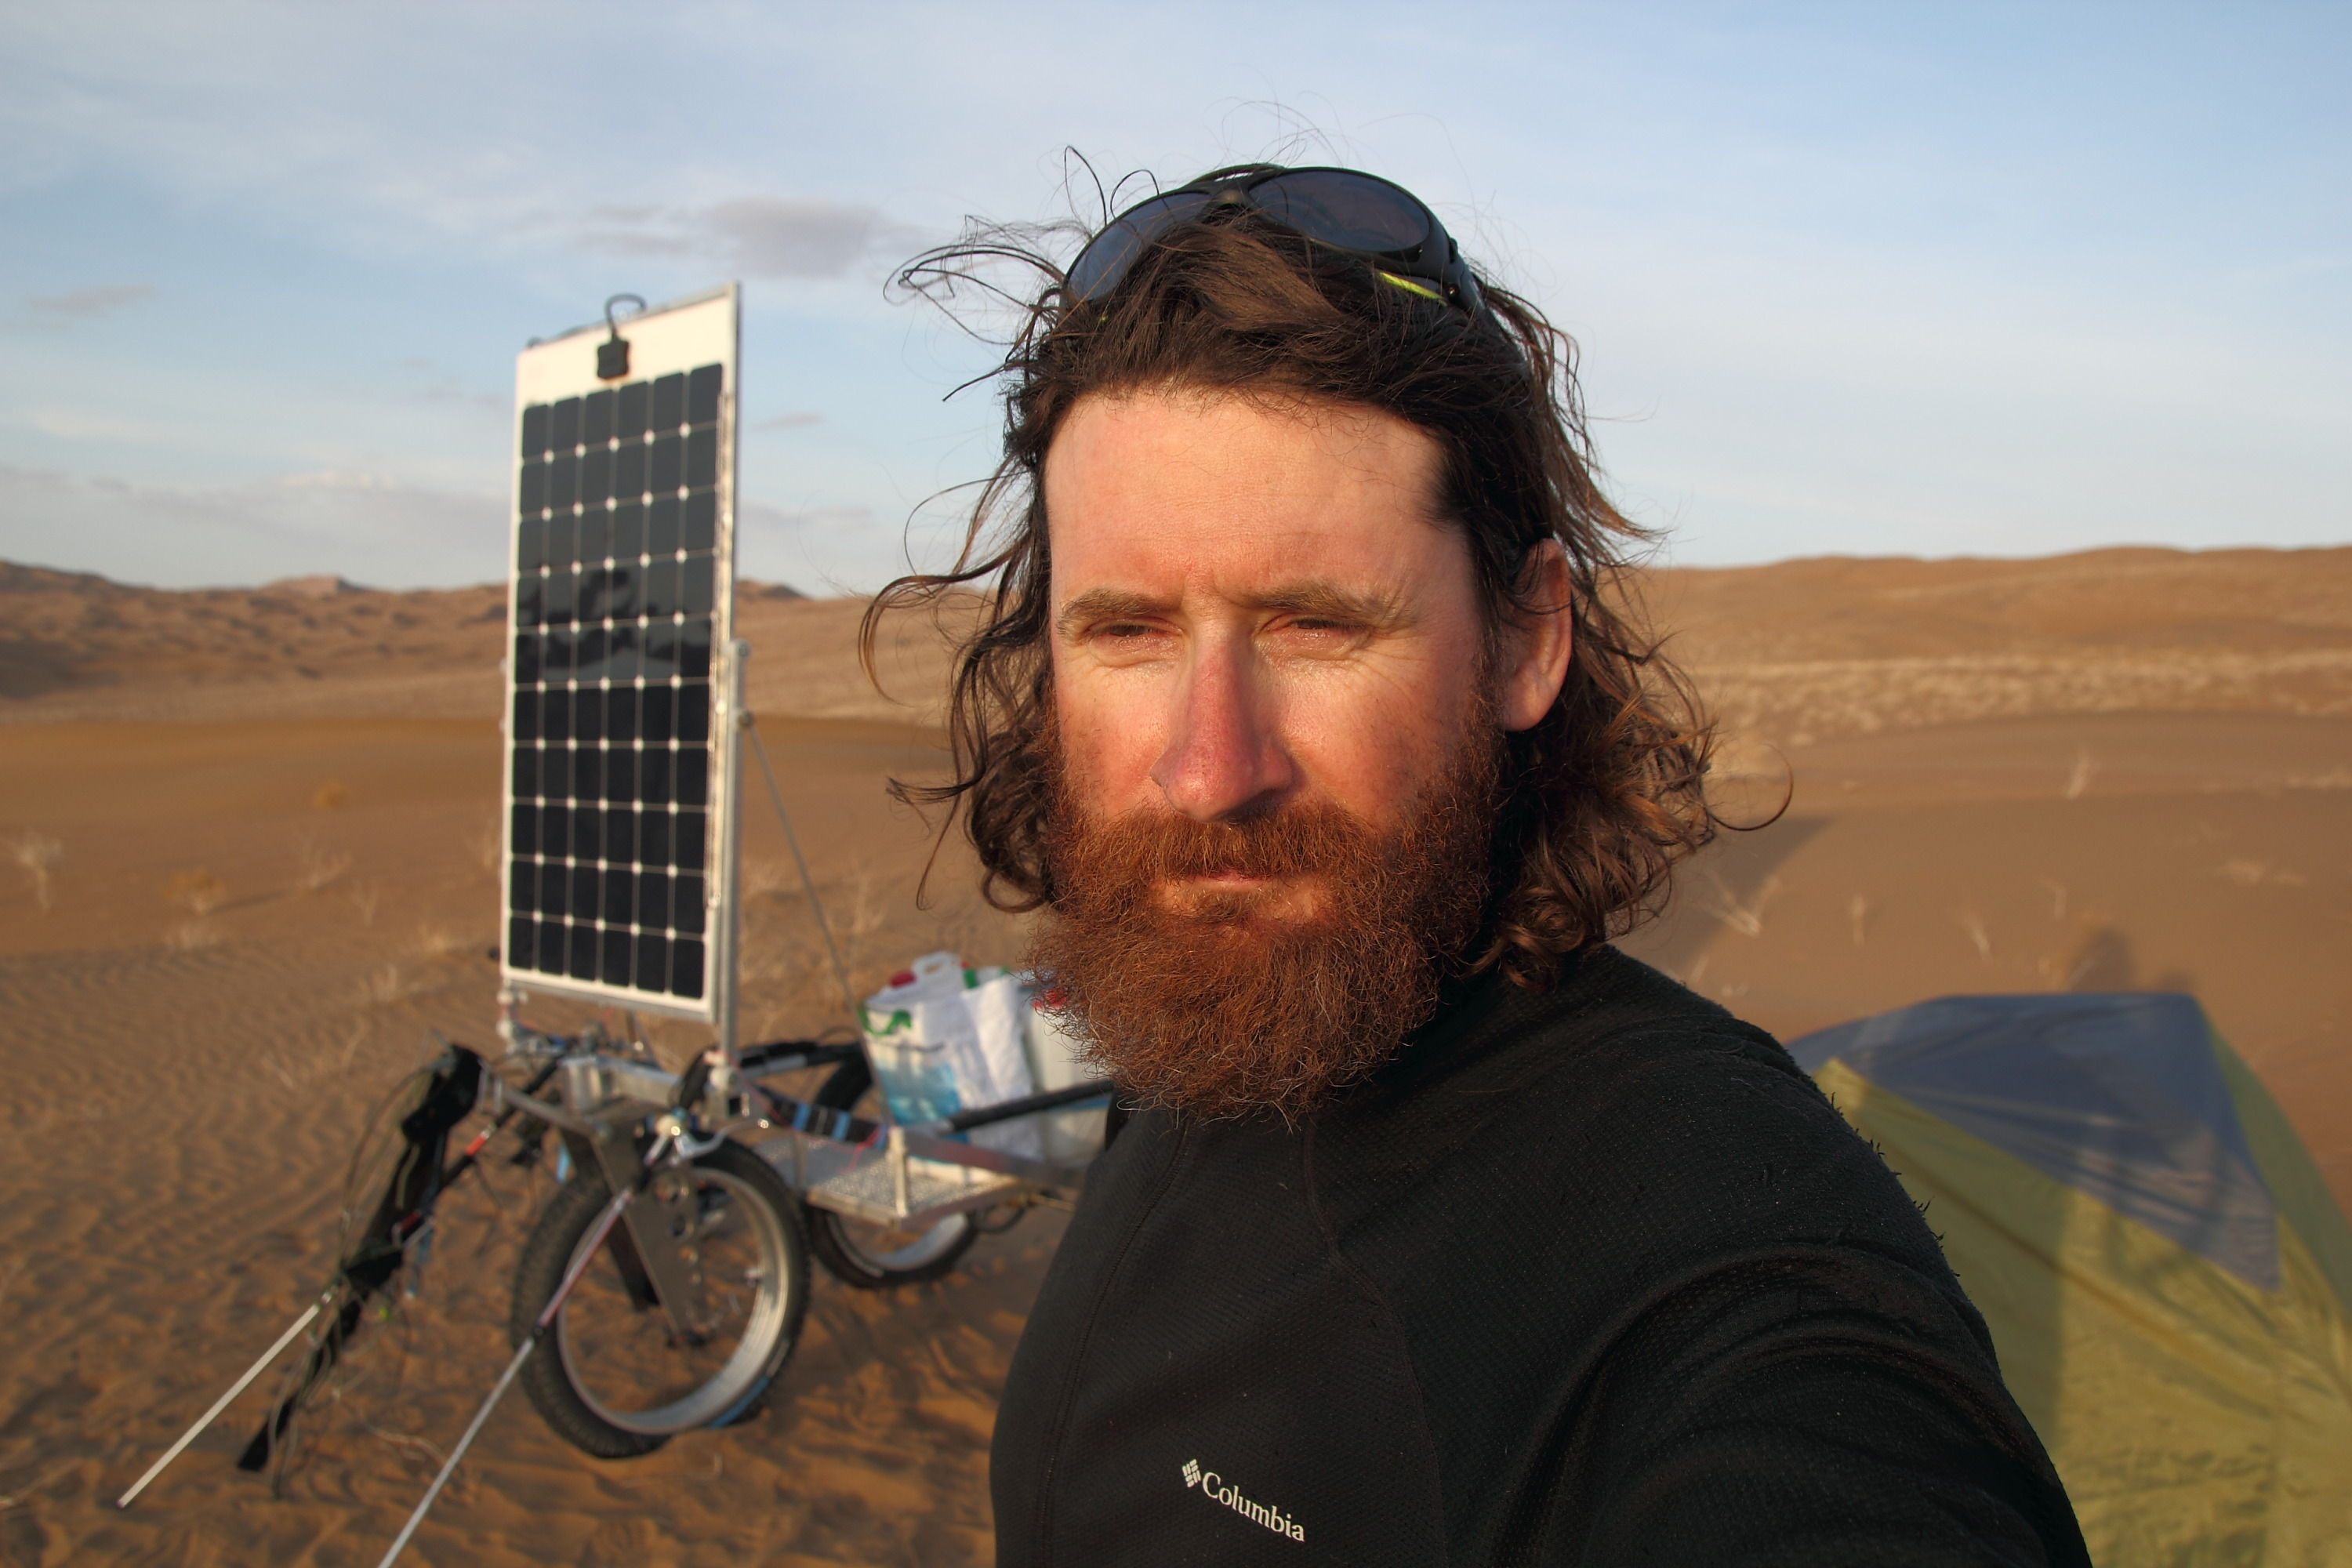 Olivier Coste selfie with his solar-powered cart with genasun controllers